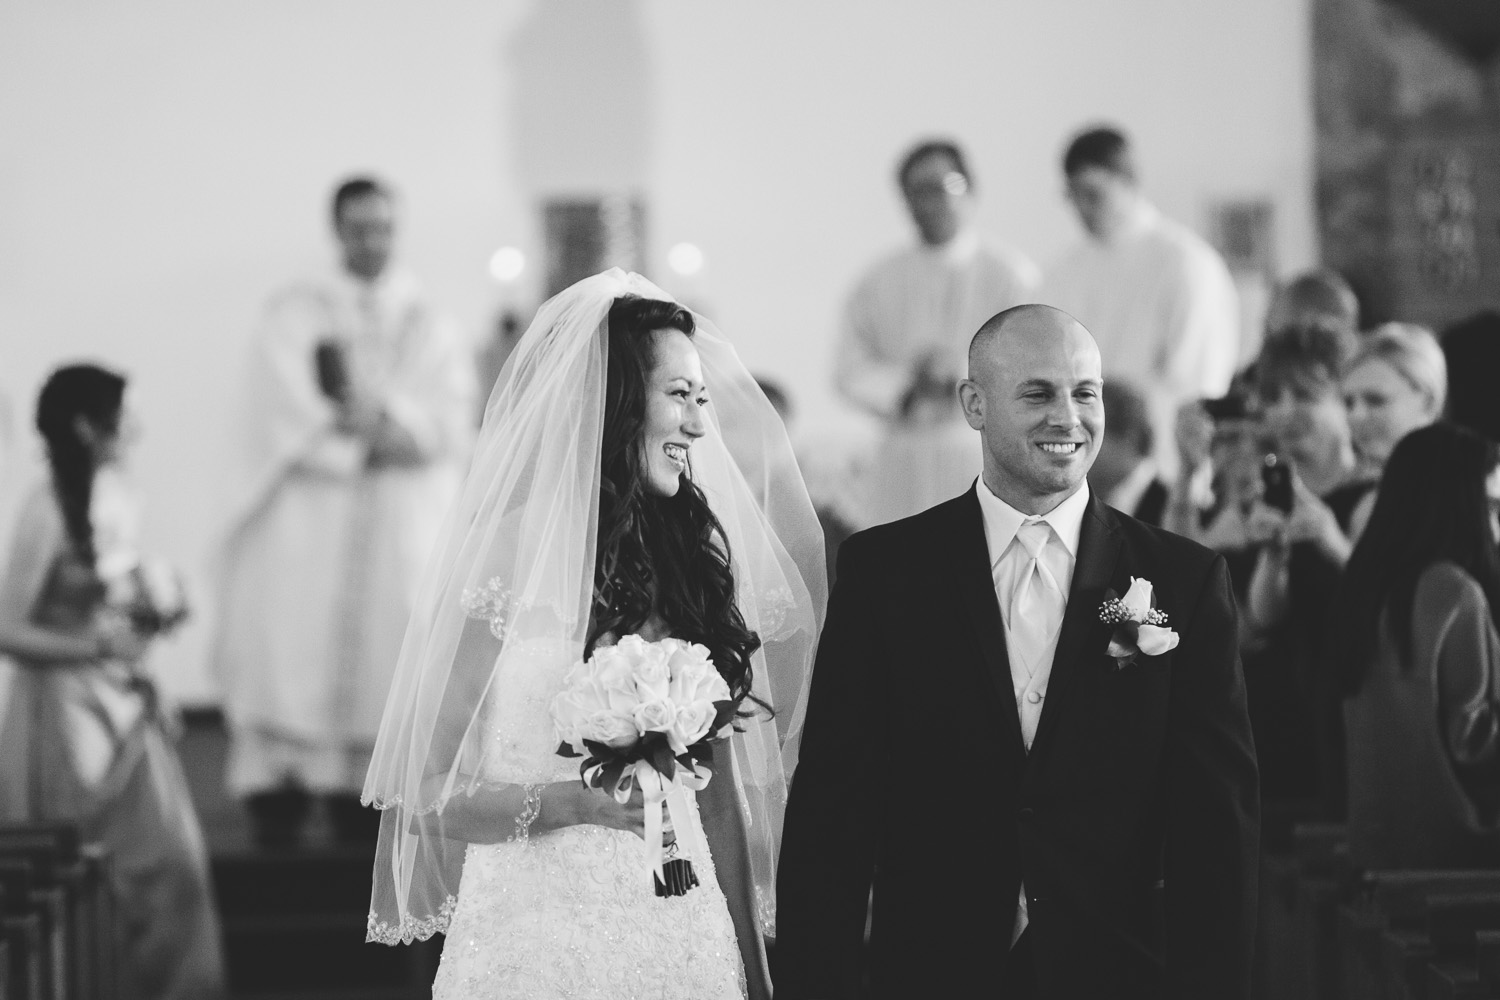 wedding ceremony bride and groom recessional exit